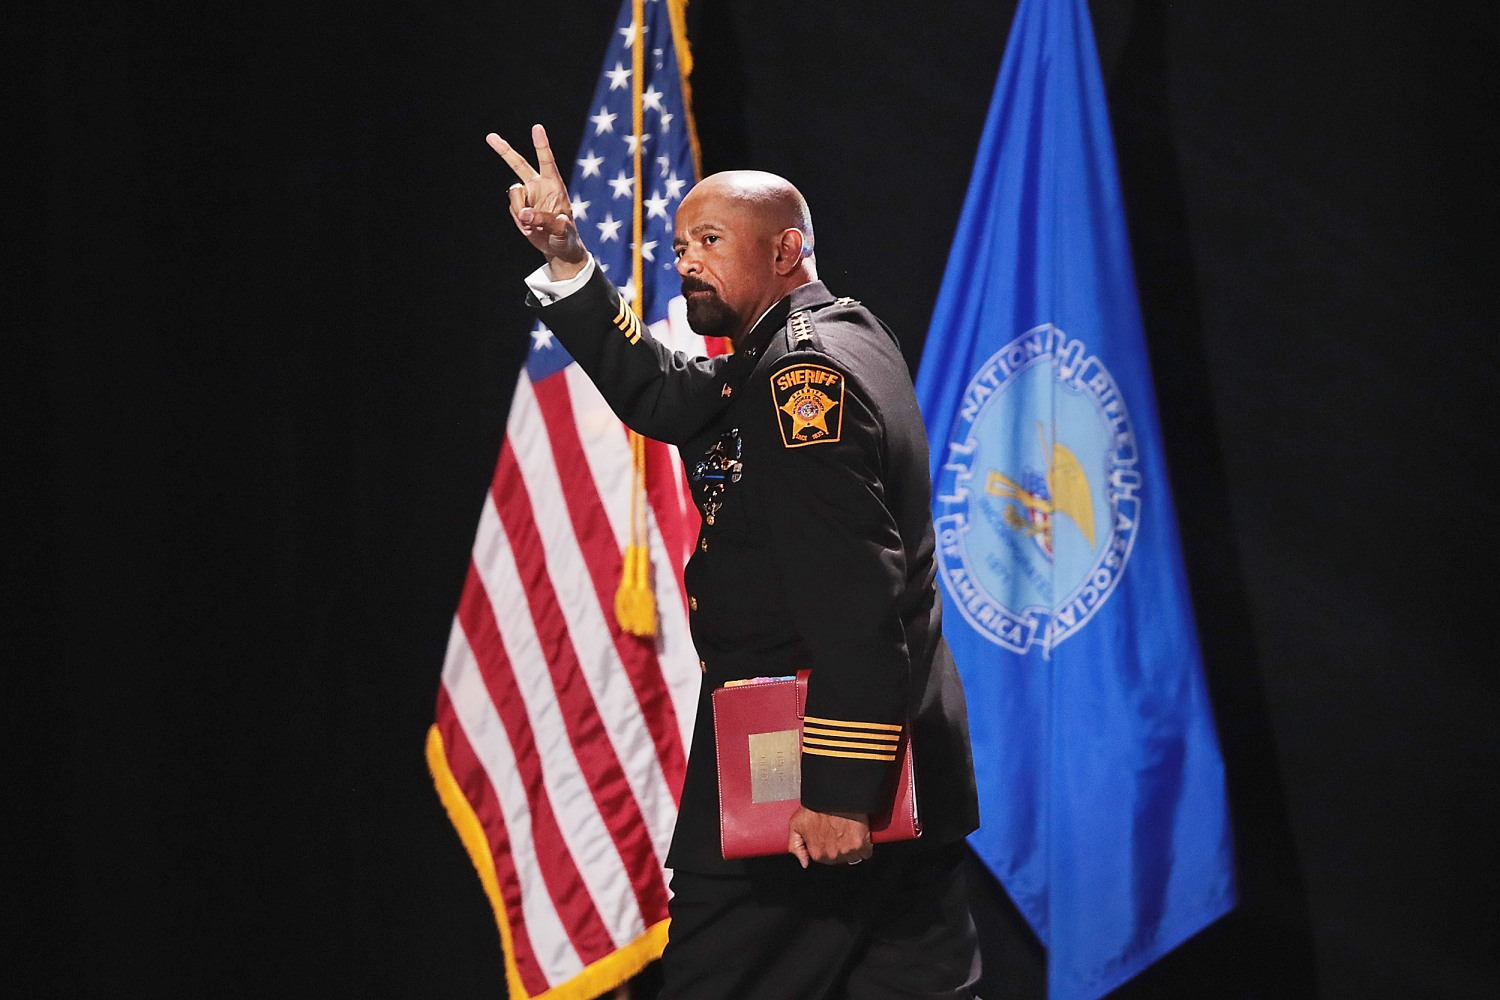 Milwaukee County Sheriff David Clarke has resigned